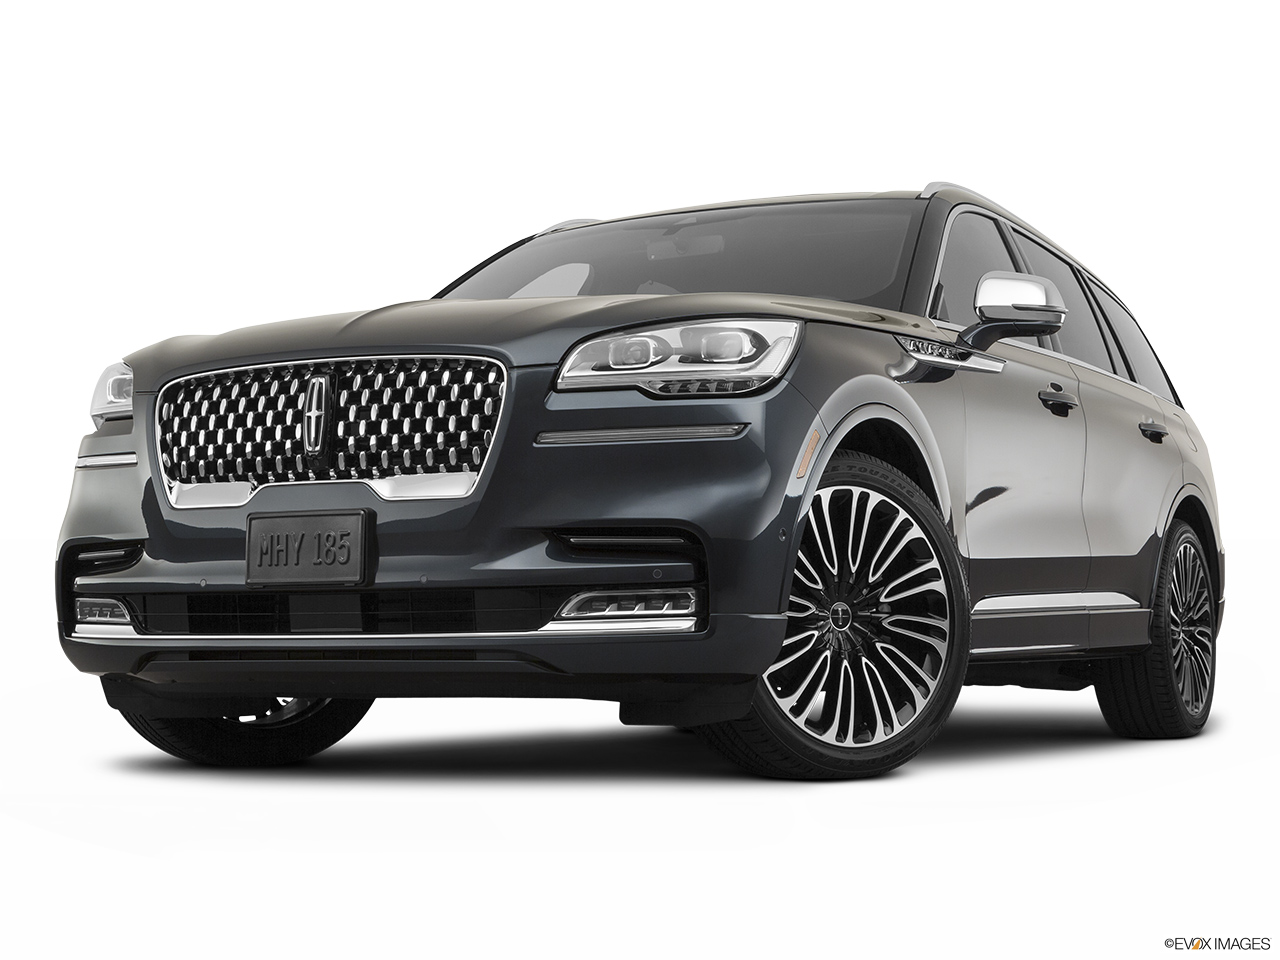 2020 Lincoln Aviator Black Label Front angle view, low wide perspective.